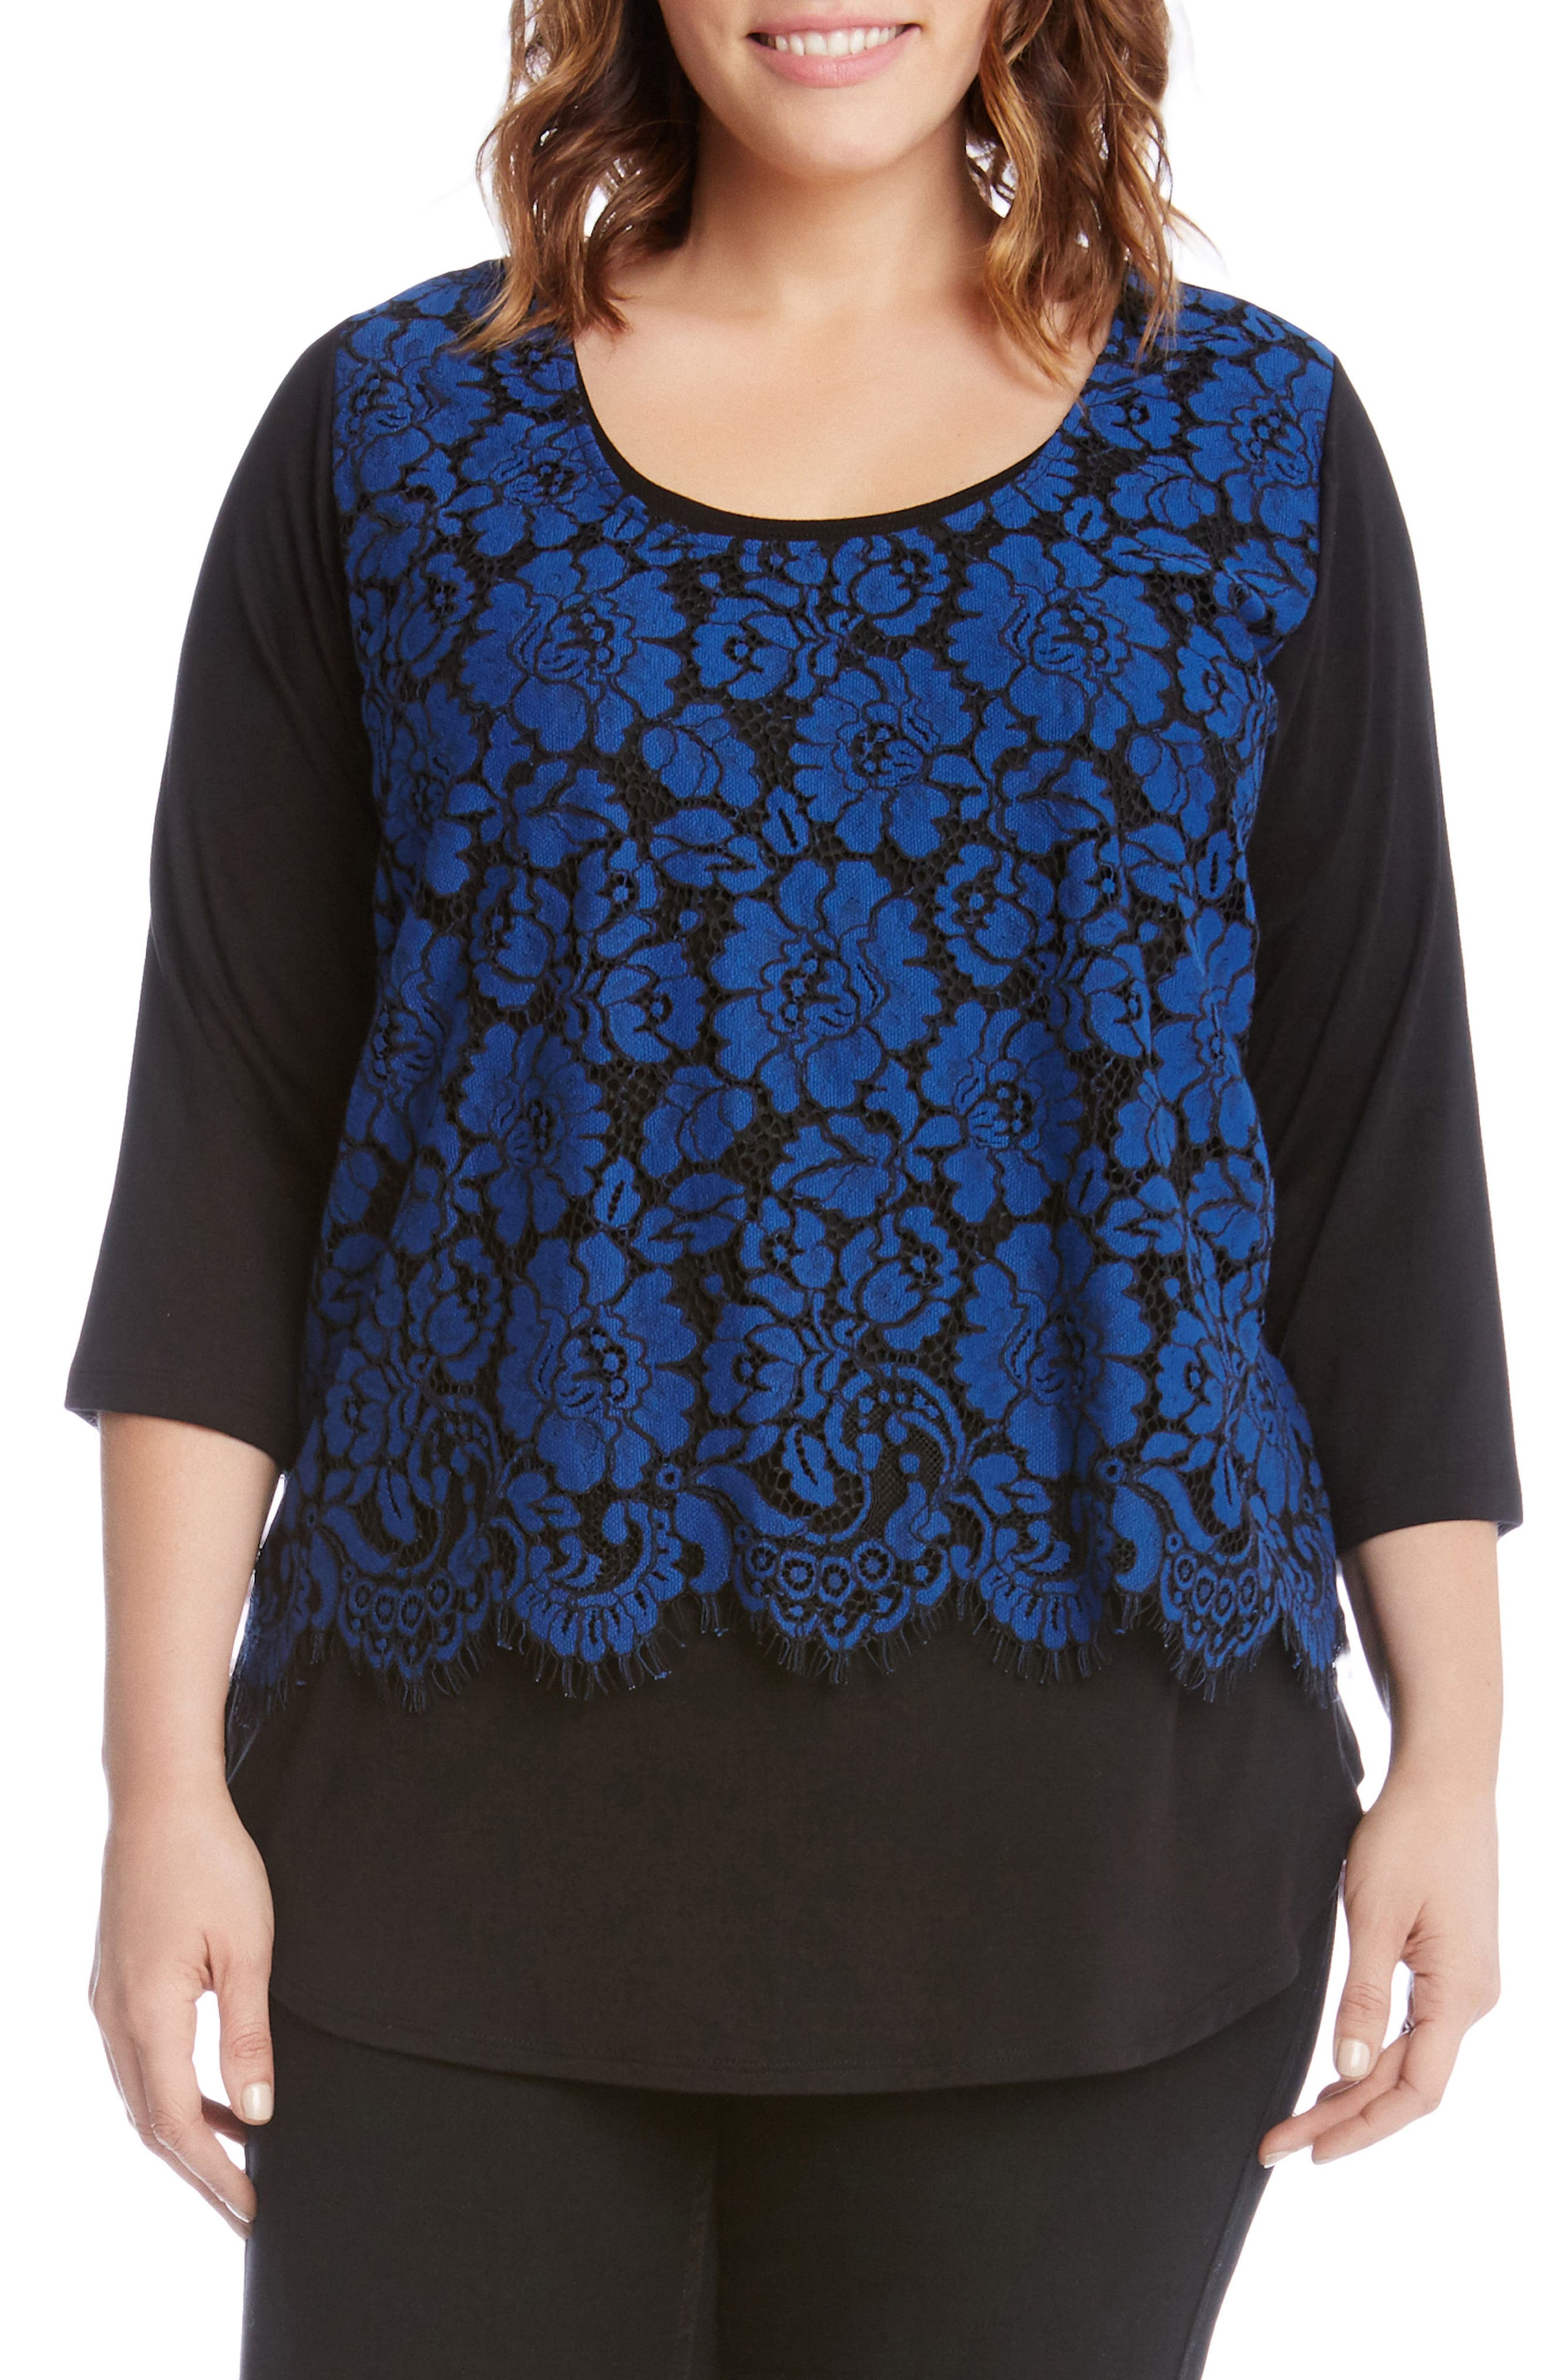 Lace Overlay Top,                             Main thumbnail 1, color,                             Black With Blue